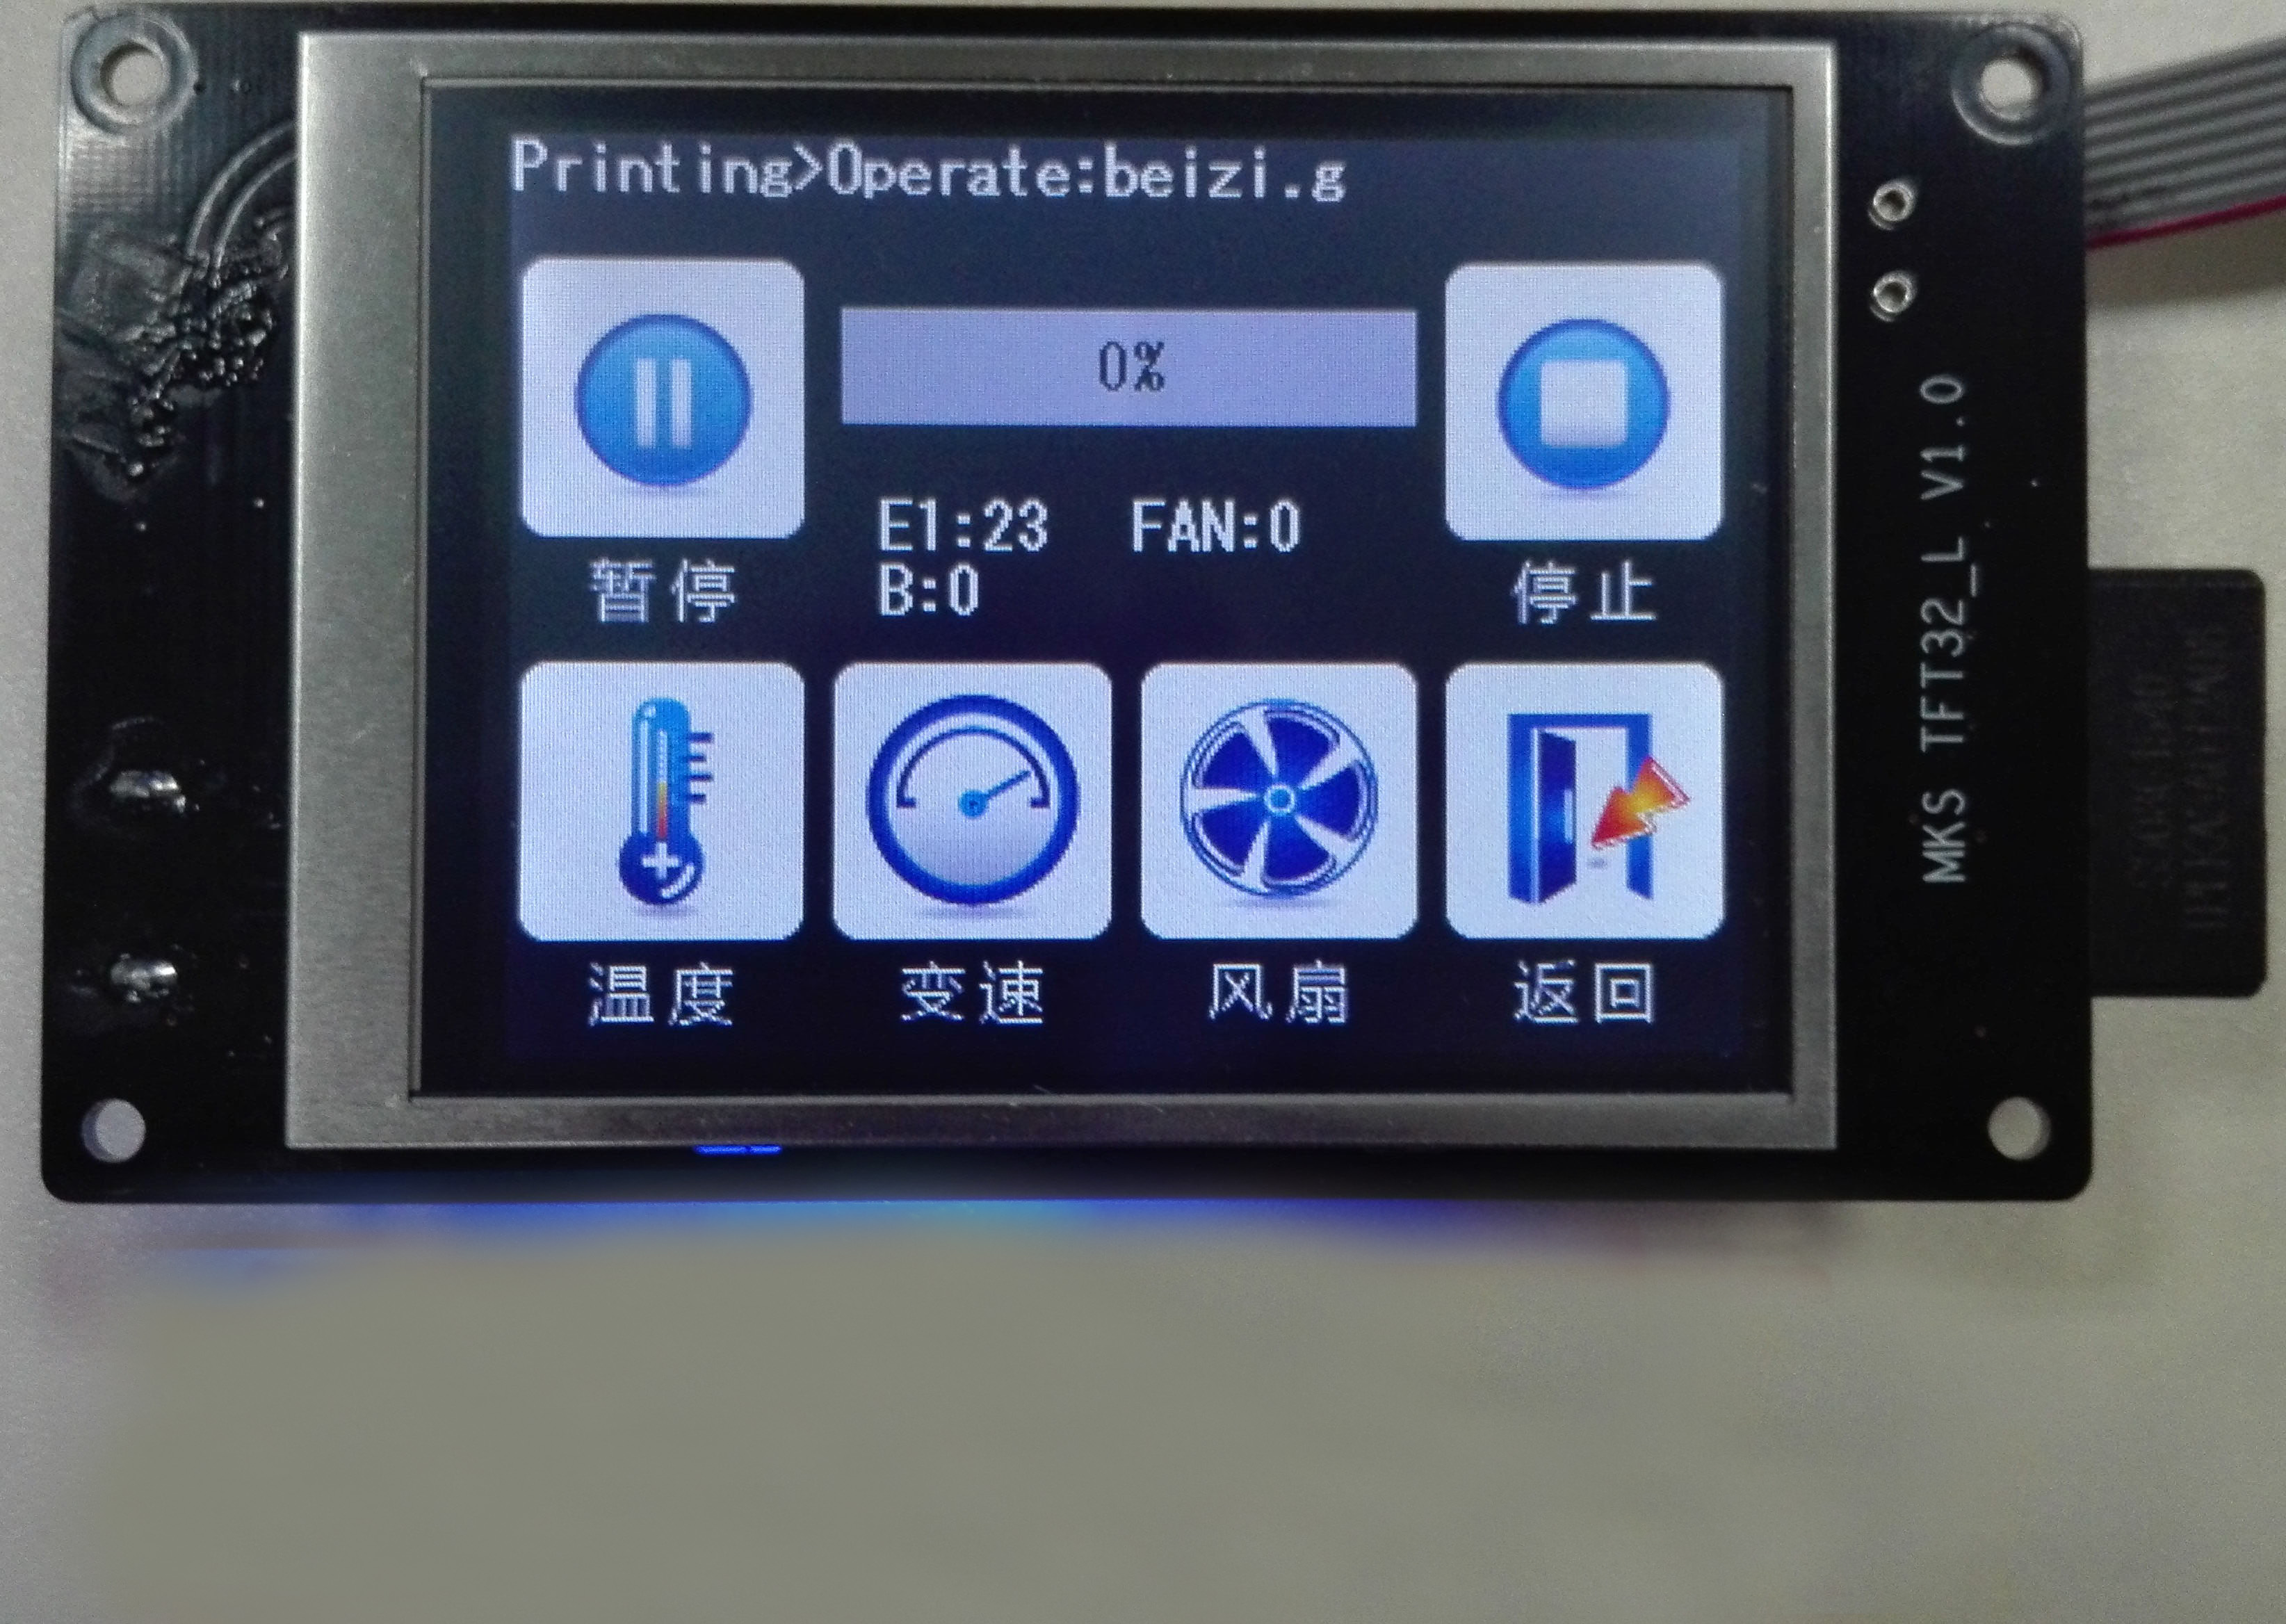 3D printer 3.2 inch full-color touch screen for MKS TFT32 ...